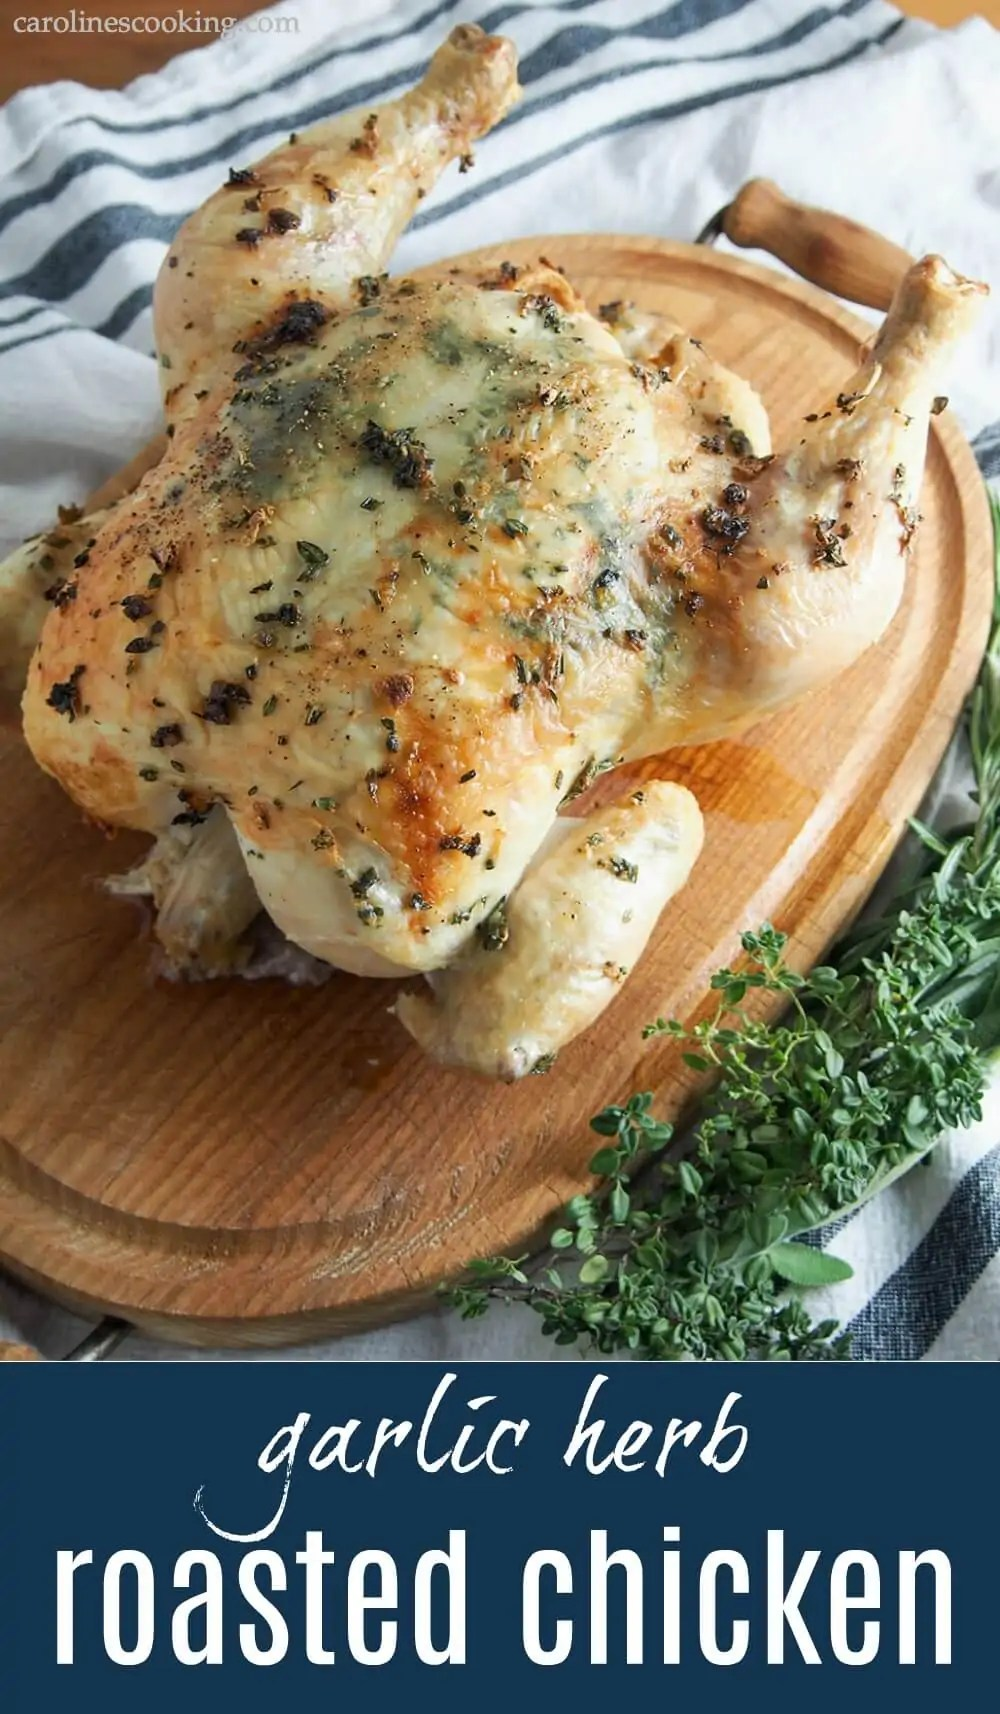 This garlic herb roasted chicken ups your roasting game by adding herbs, garlic & butter under the skin for extra flavor. Comforting, easy and delicious. #roastchicken #chicken #roast #herbs